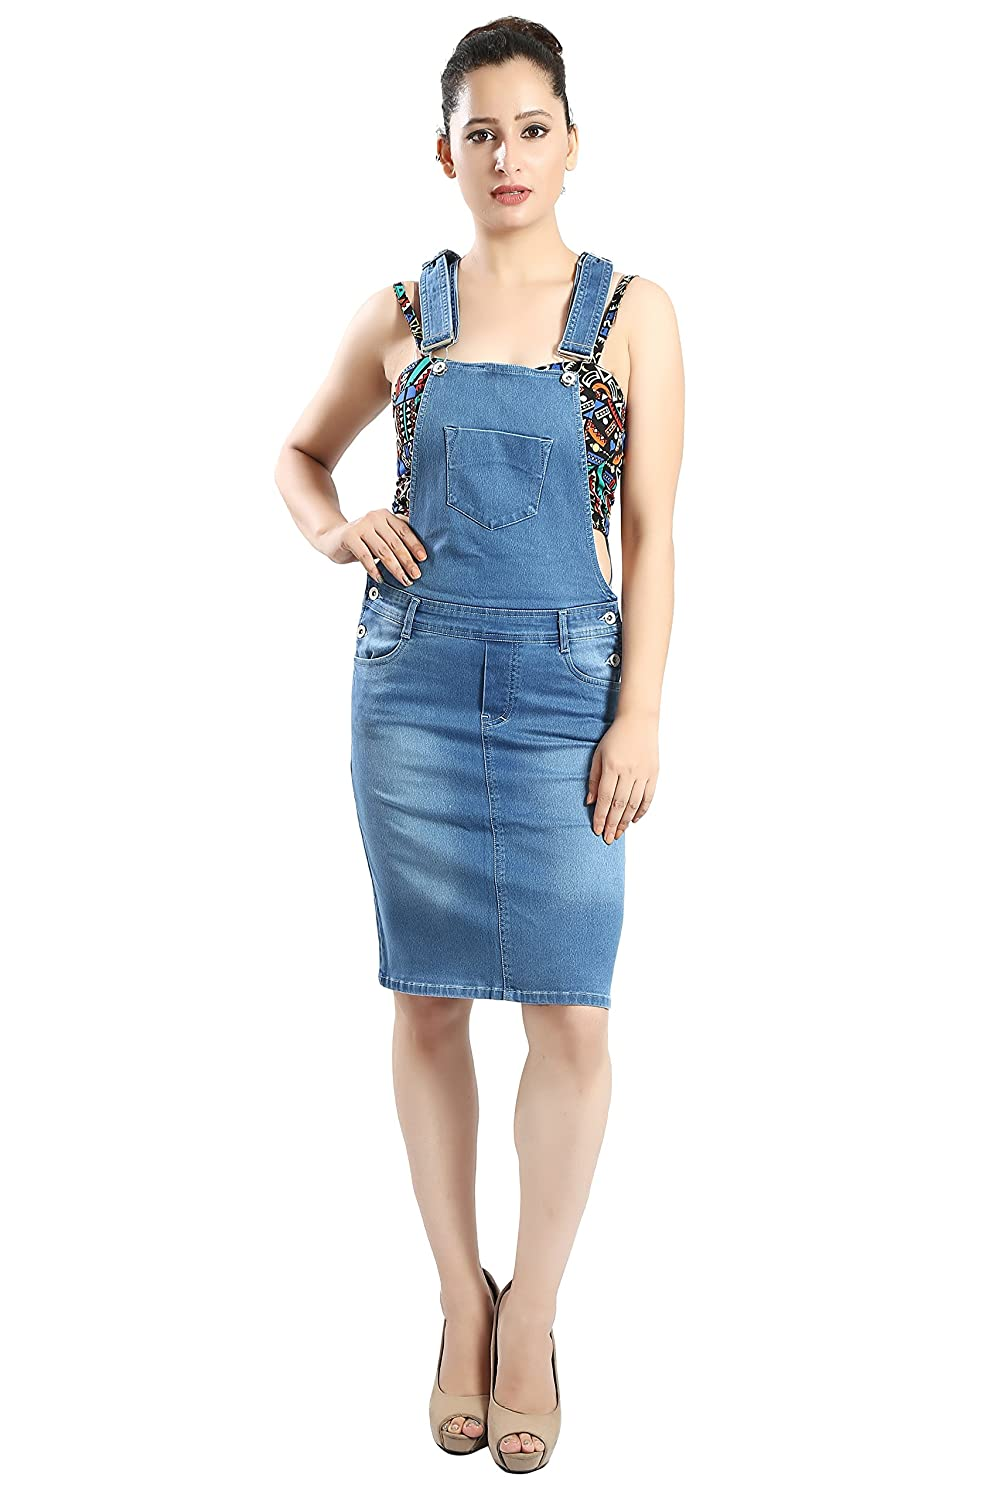 f95962f820b9 FCK-3 Women s Pencil Fit Stretchable Denim Skirt Dungaree  Amazon.in   Clothing   Accessories